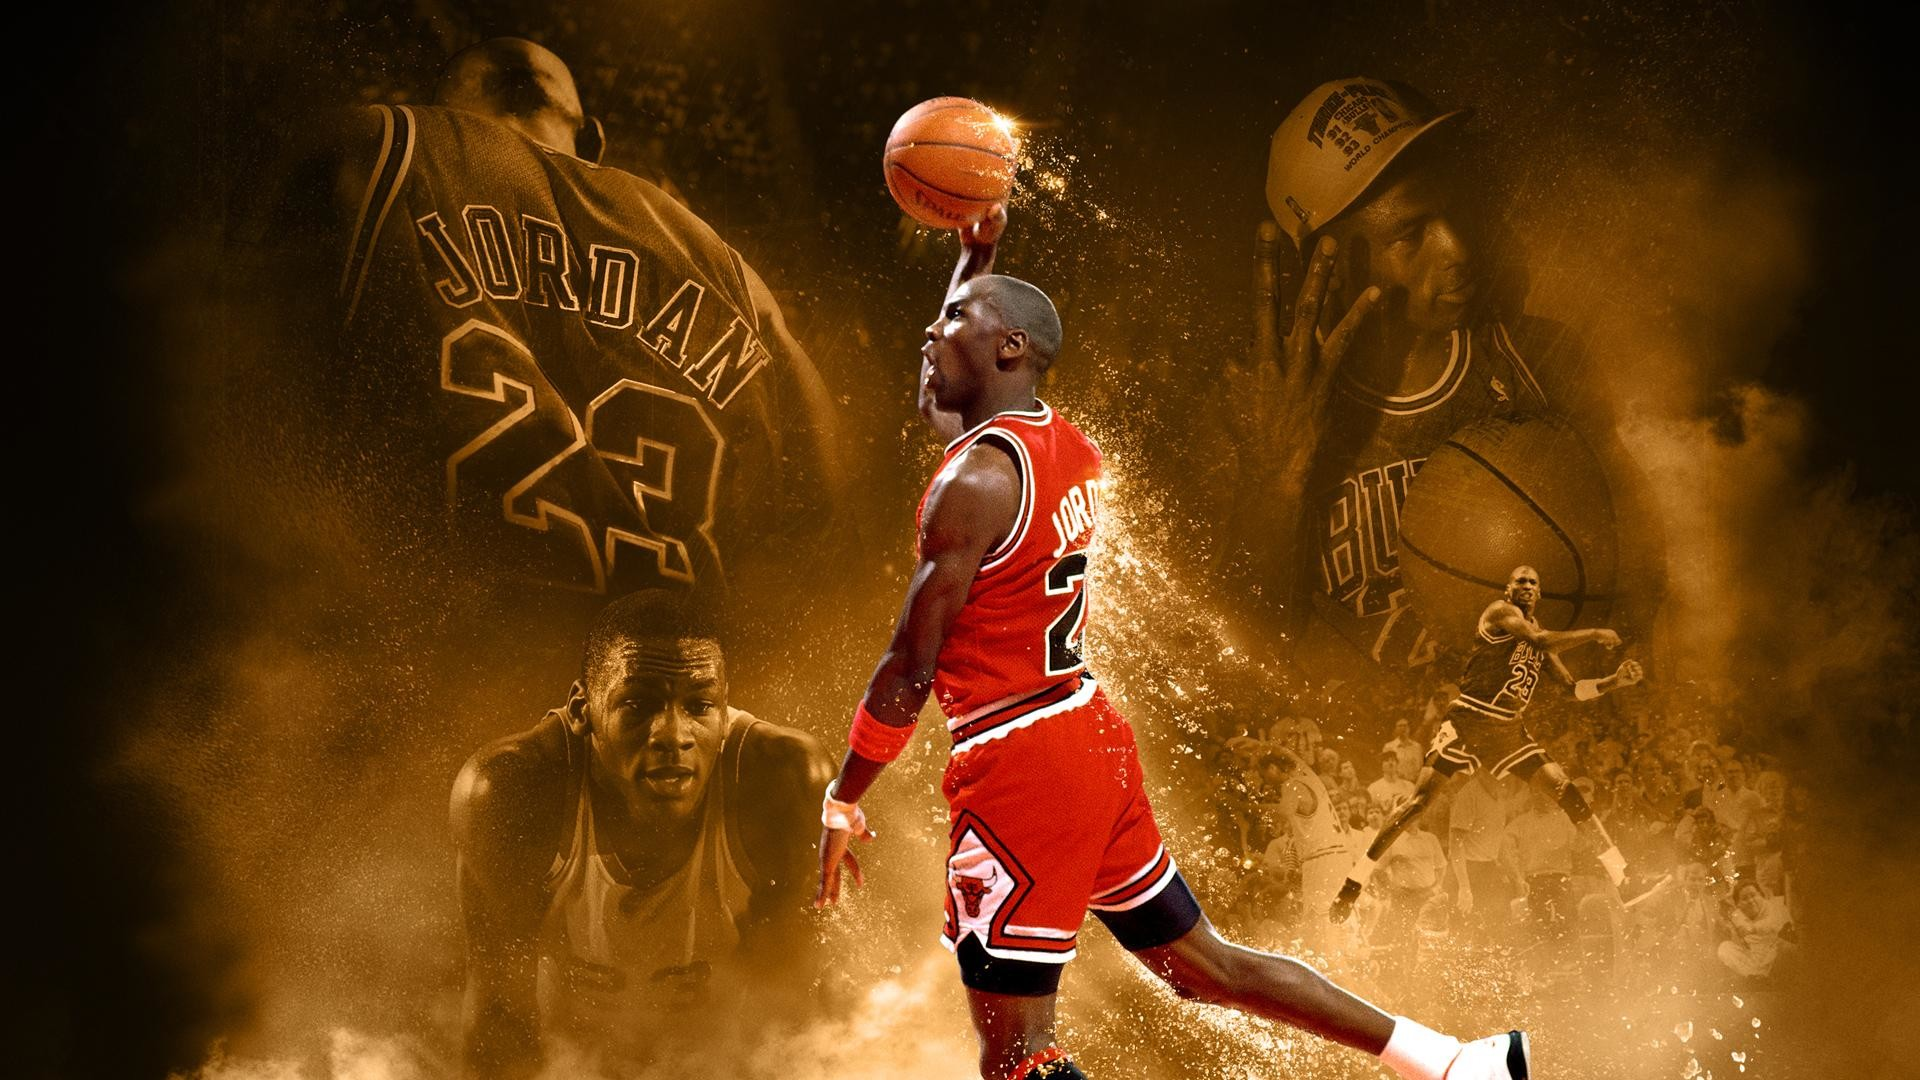 1920x1200 Mobile Compatible Michael Jordan 1080p Backgrounds, Leighann Thedford